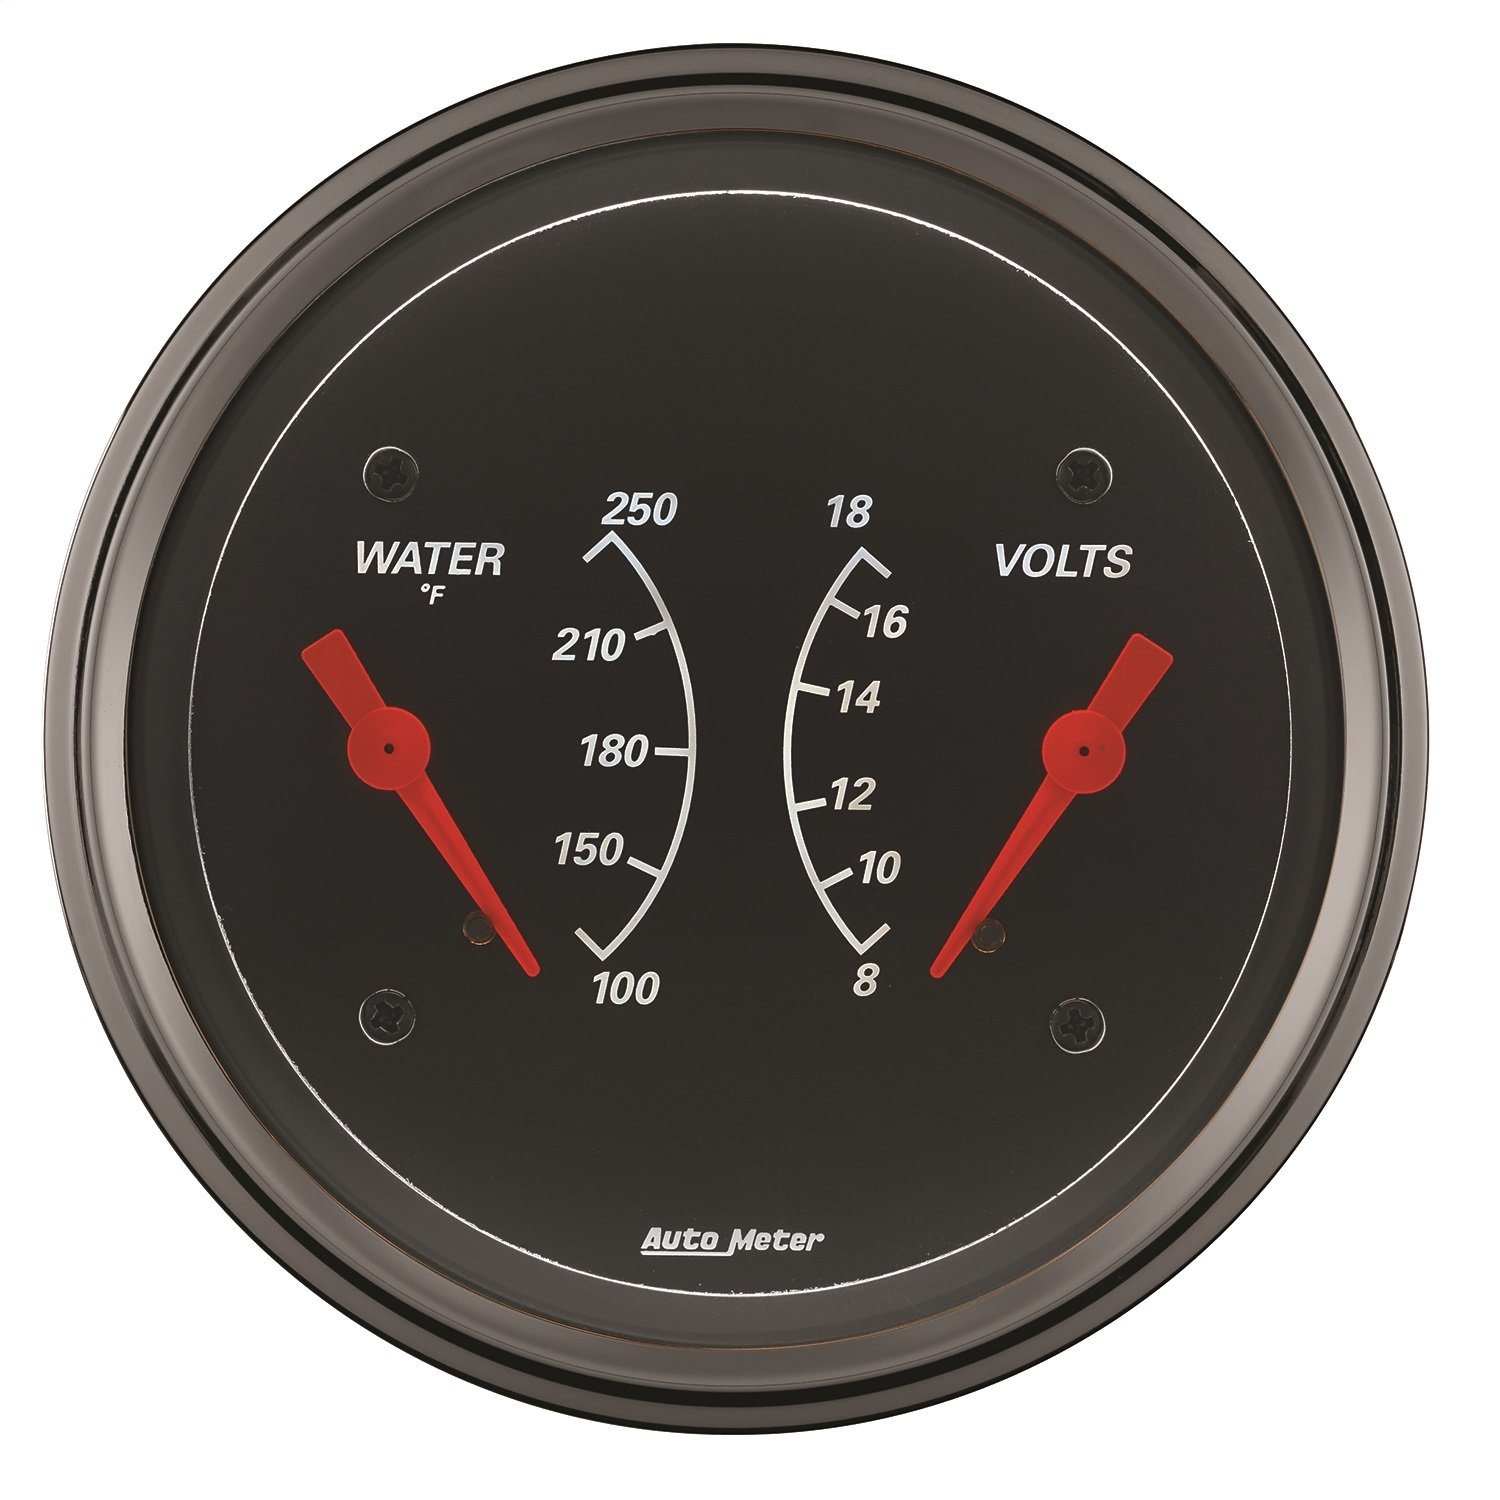 Auto Meter 1430 Designer Black Water Temperature Gauge